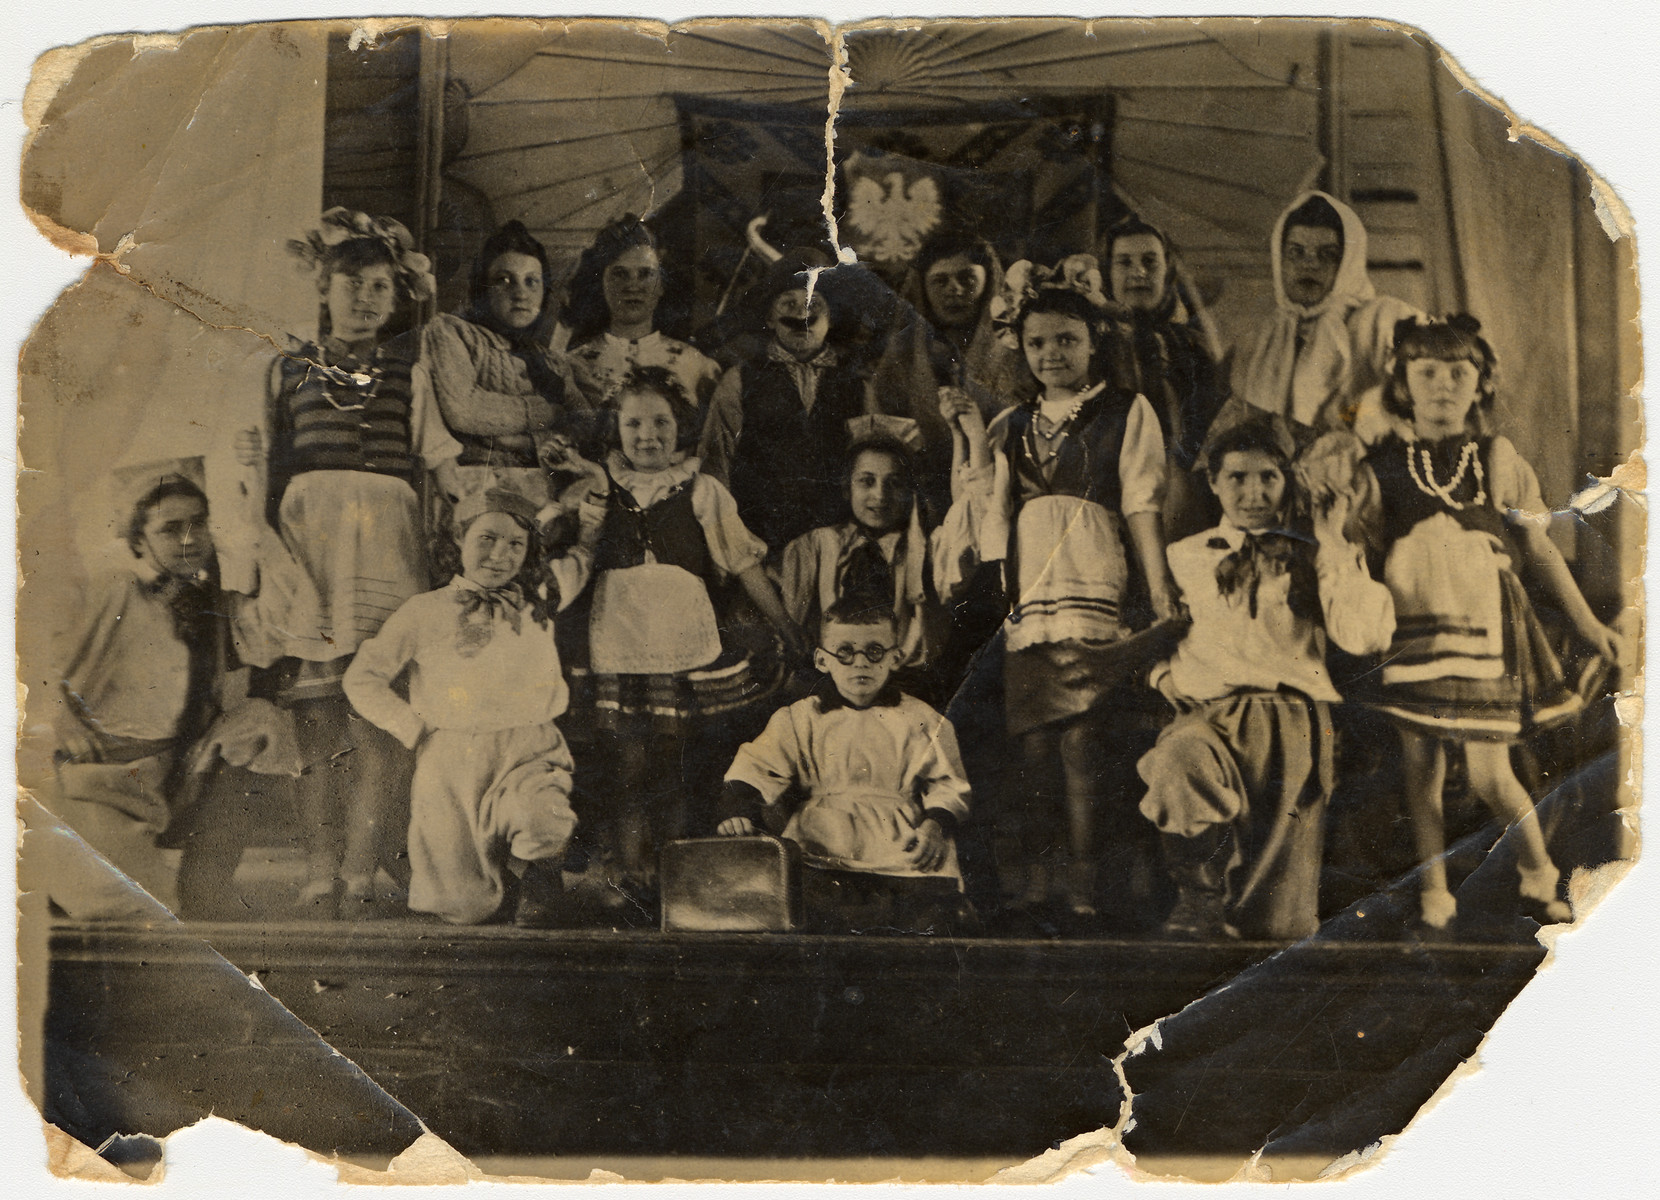 Group portrait of children, many of whom are Jewish refugees, performing on stage in traditional Polish folk costumes.   Among those pictued is Esther Szulc, the donor's wife (first from the right in the front row).